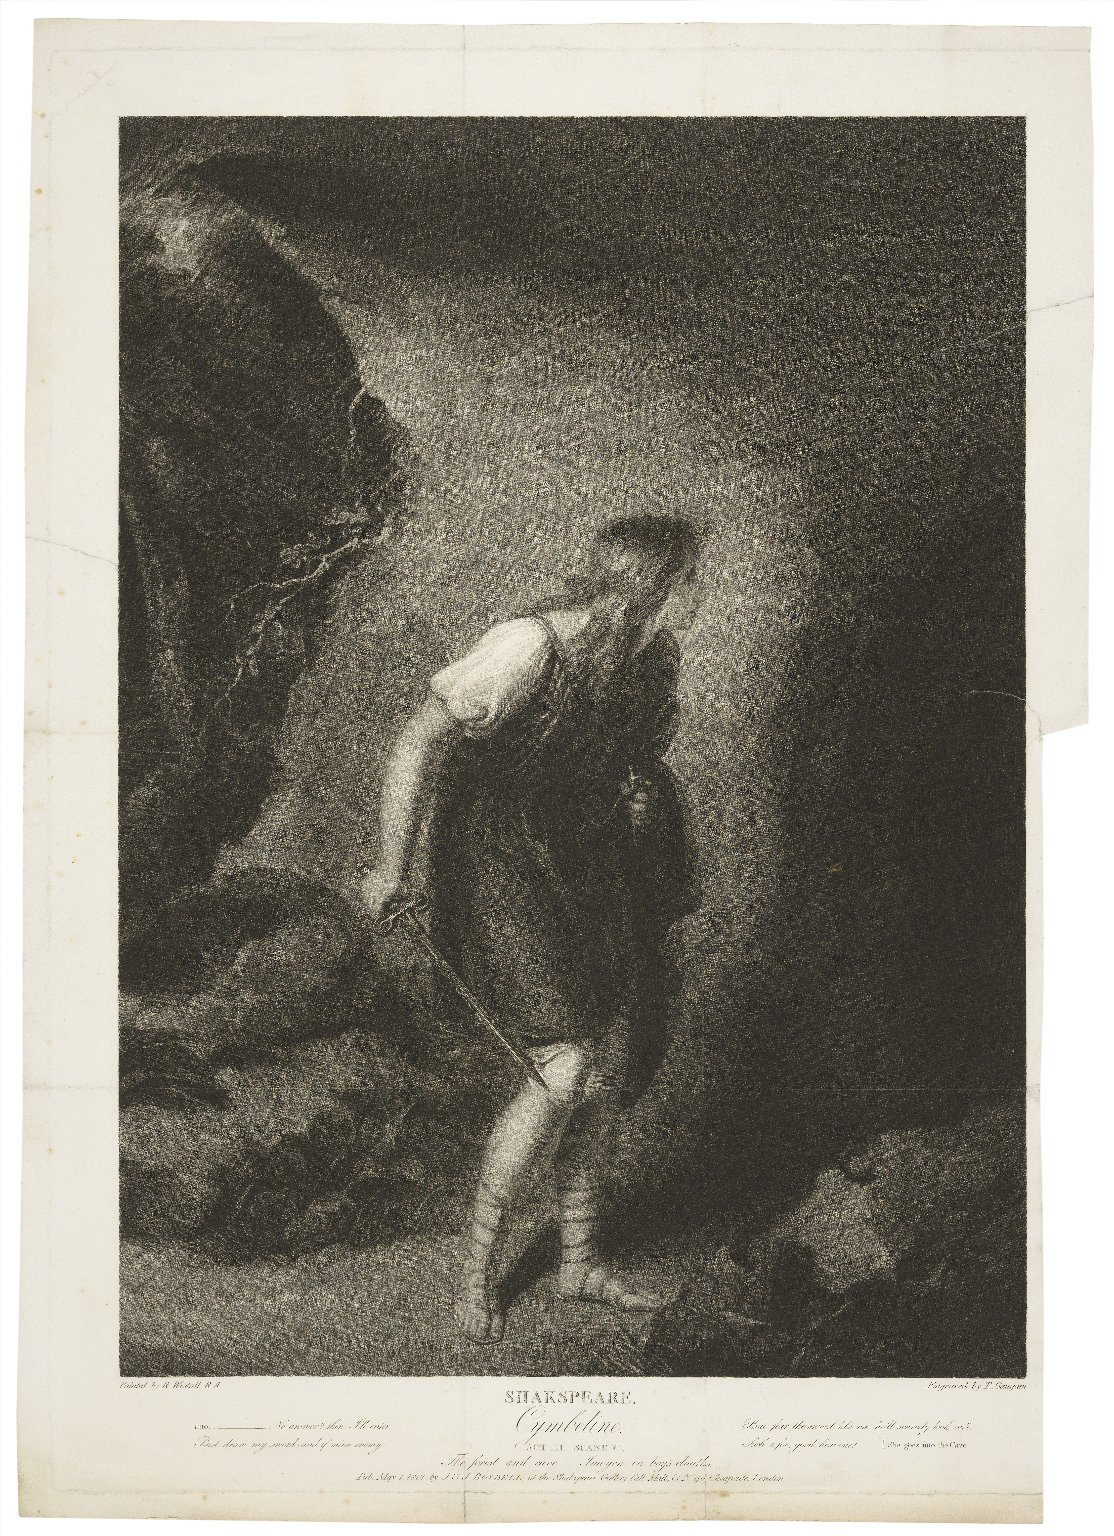 Cymbeline, act III, scene VI, the forest and cave, Imogen in boy's cloaths [sic] [graphic] / painted by R. Westall ; engraved by T. Gaugain.